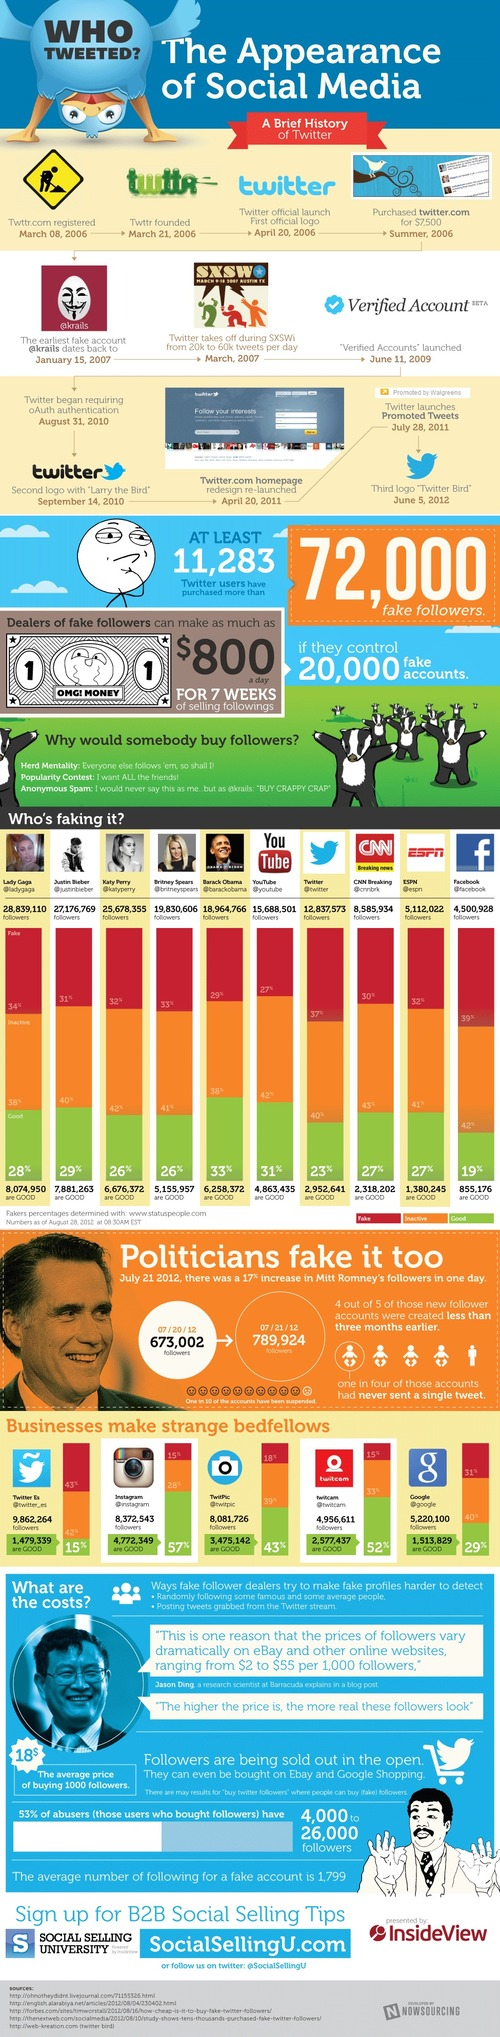 Who-Tweeted-The-Appearance-Of-Social-Media